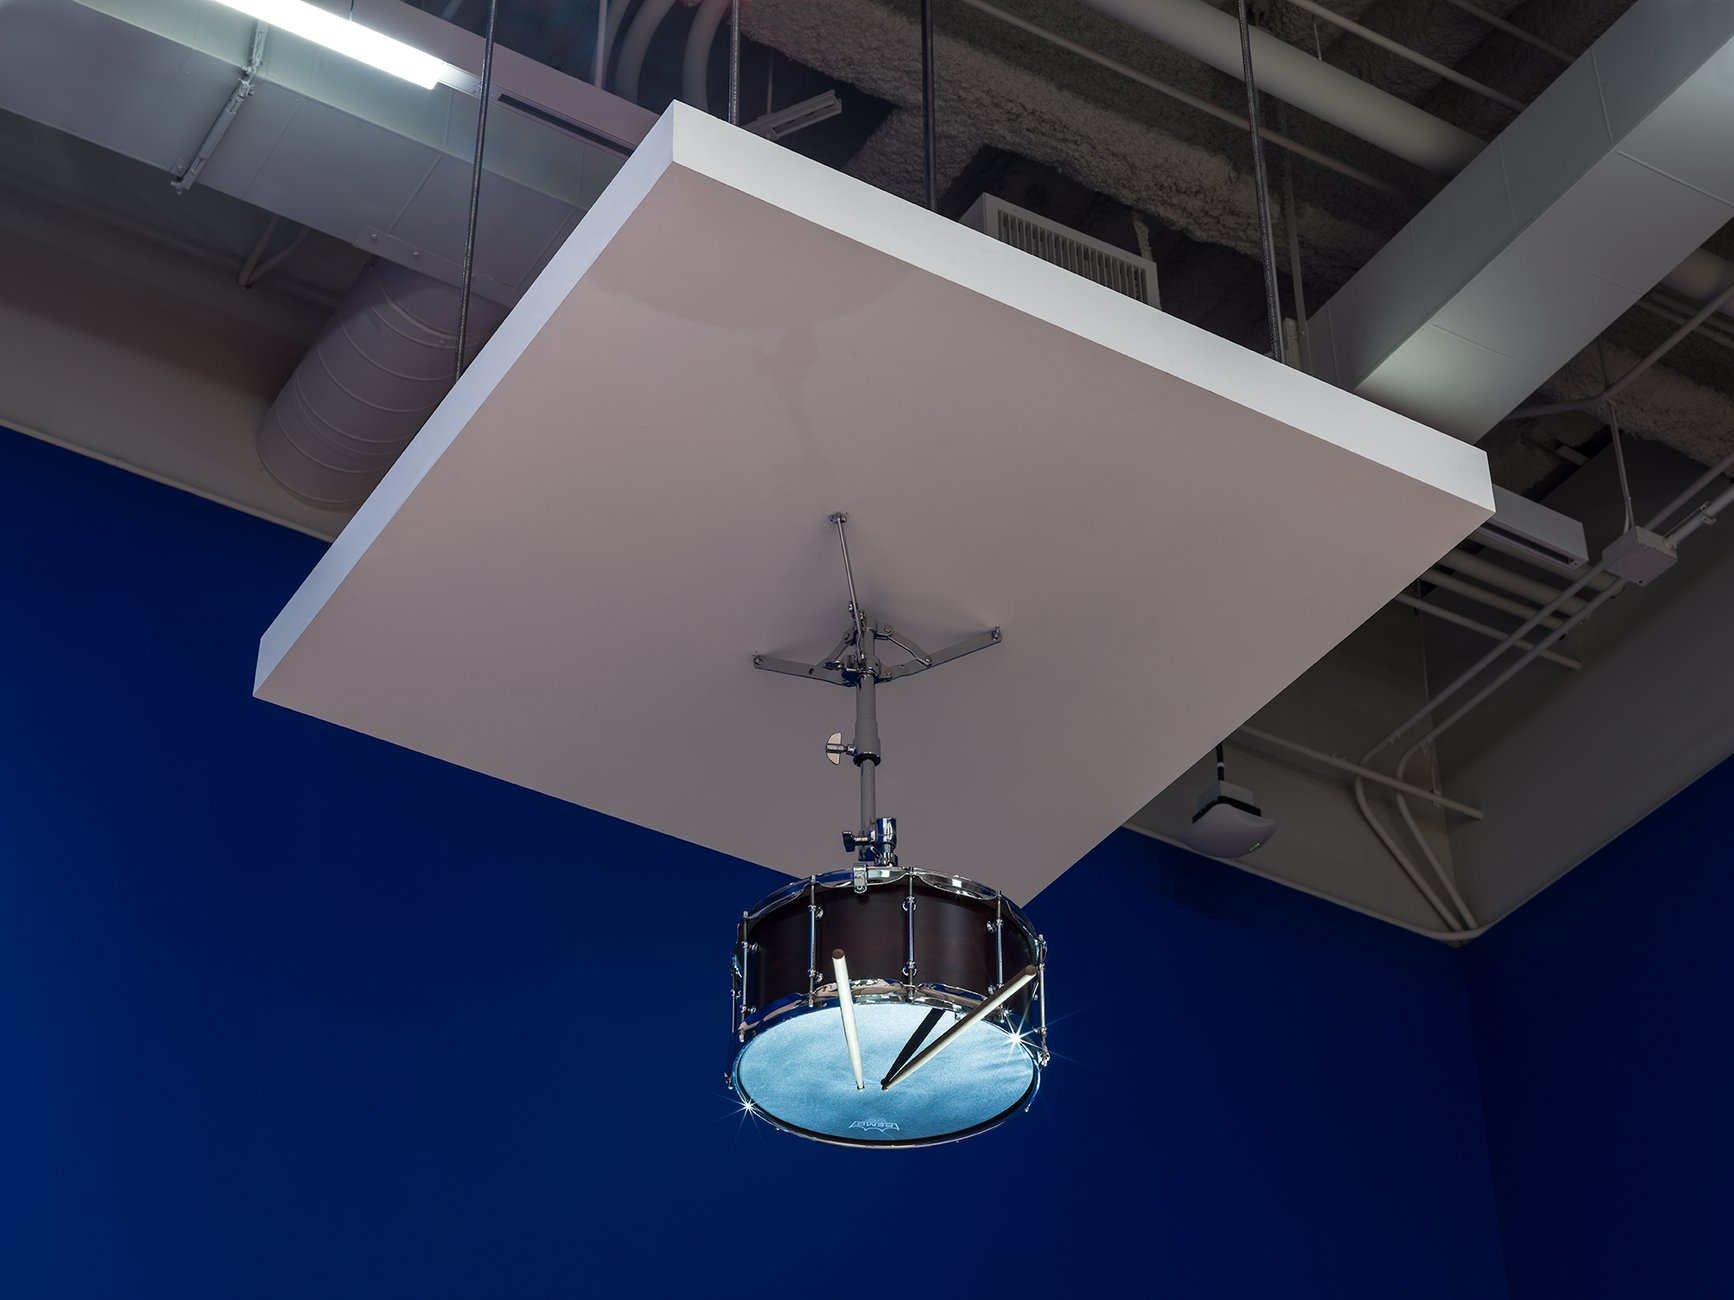 A snare drum hangs from the ceiling before a royal blue wall, Sala, Soundtracks